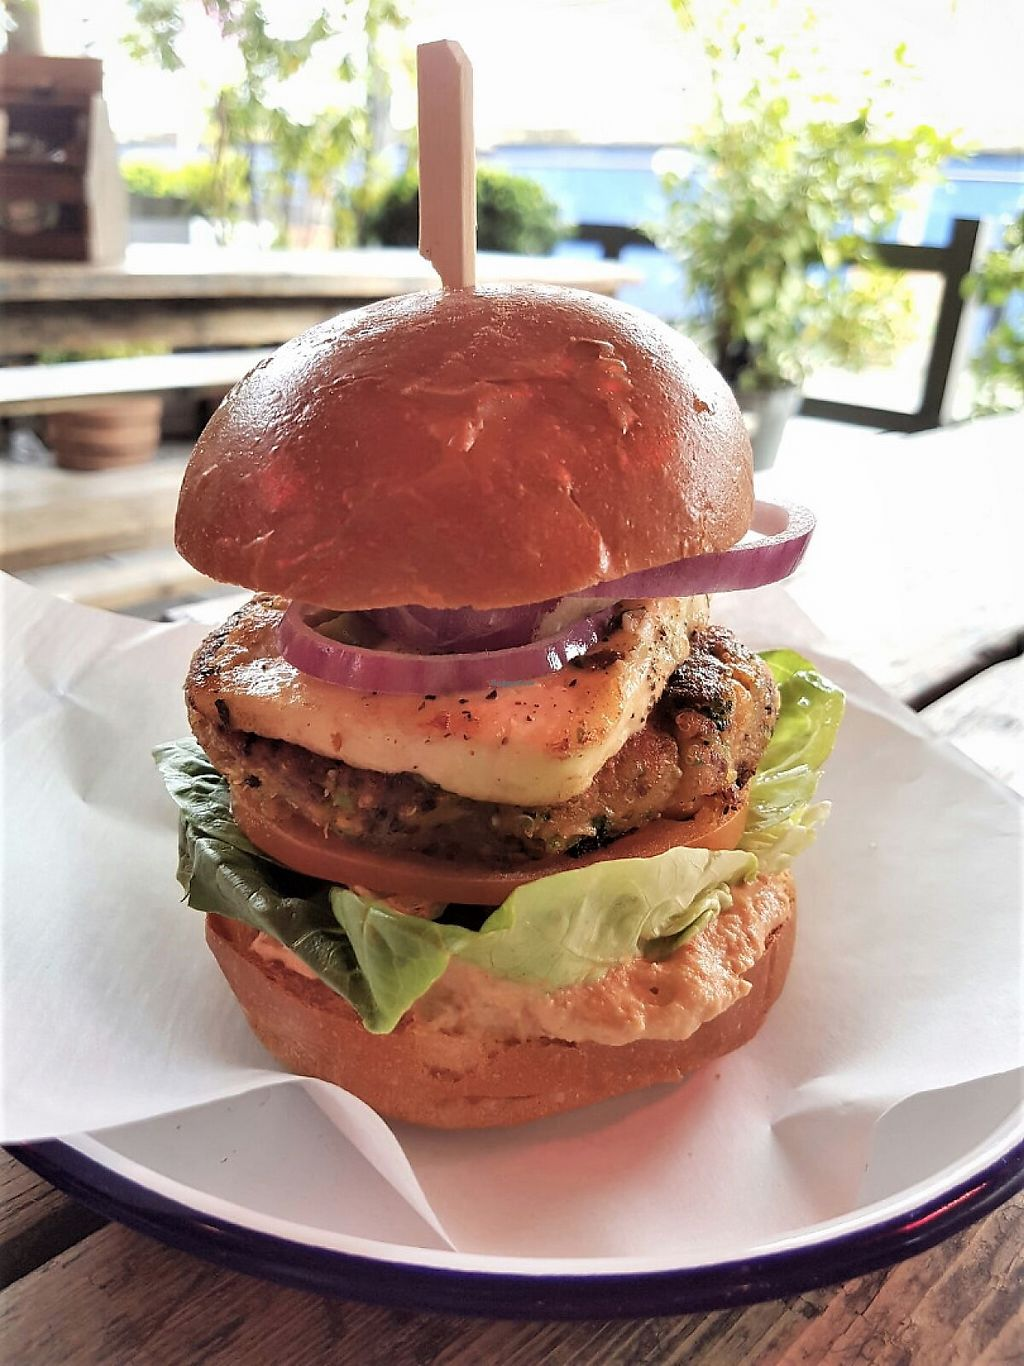 "Photo of Jack's Bar  by <a href=""/members/profile/JacksBar"">JacksBar</a> <br/>Quinoa Burger with broccoli, smashed chickpeas, Jack's smoked tomato houmous, in-house vegan halloumi, lettuce, olives and red onion <br/> May 11, 2017  - <a href='/contact/abuse/image/91904/257801'>Report</a>"